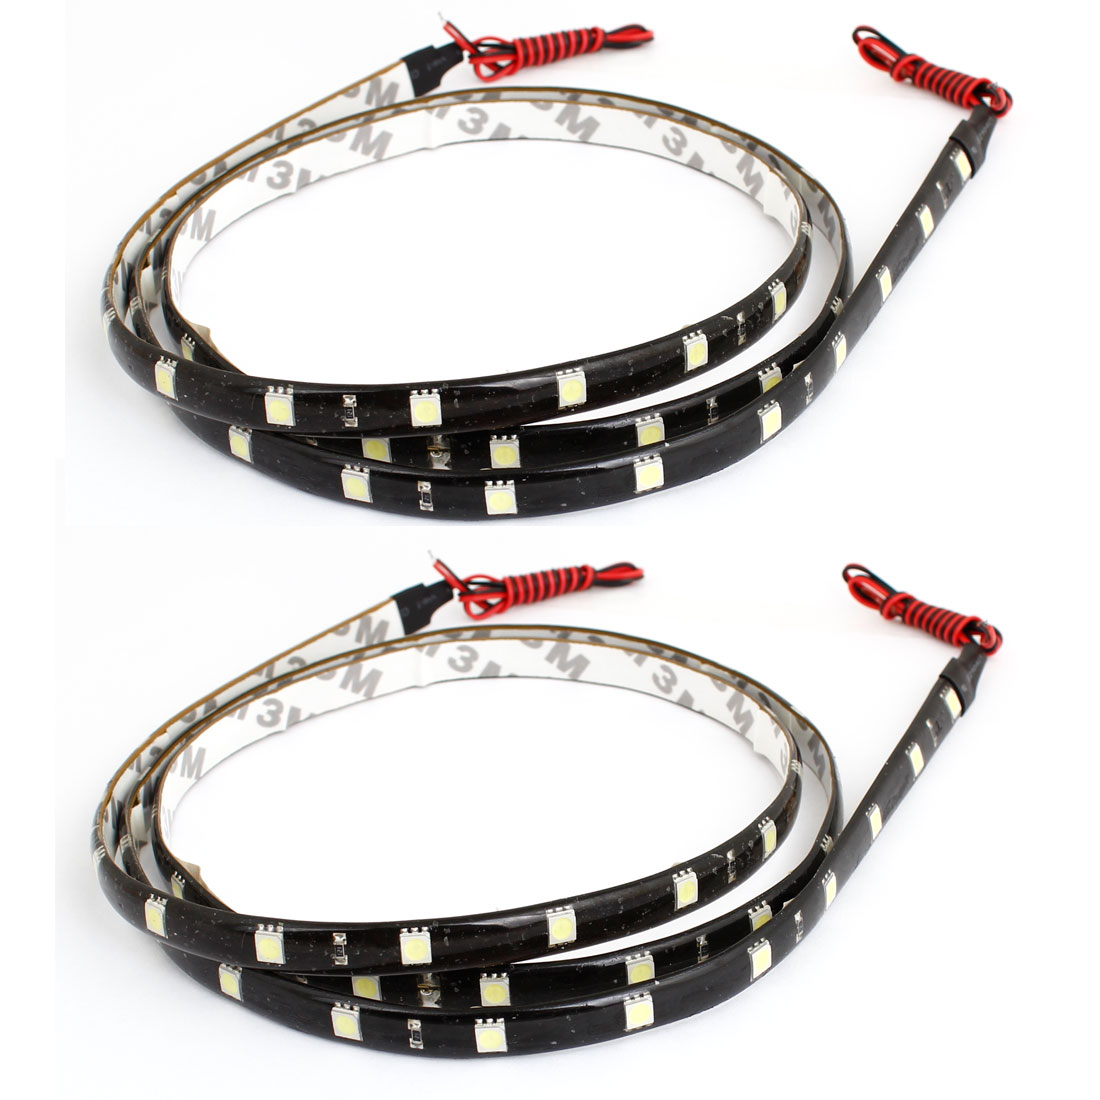 2 Pcs Adhesive Tape White 48 5050 SMD Auto Car Flexible Decor LED Strip 120cm